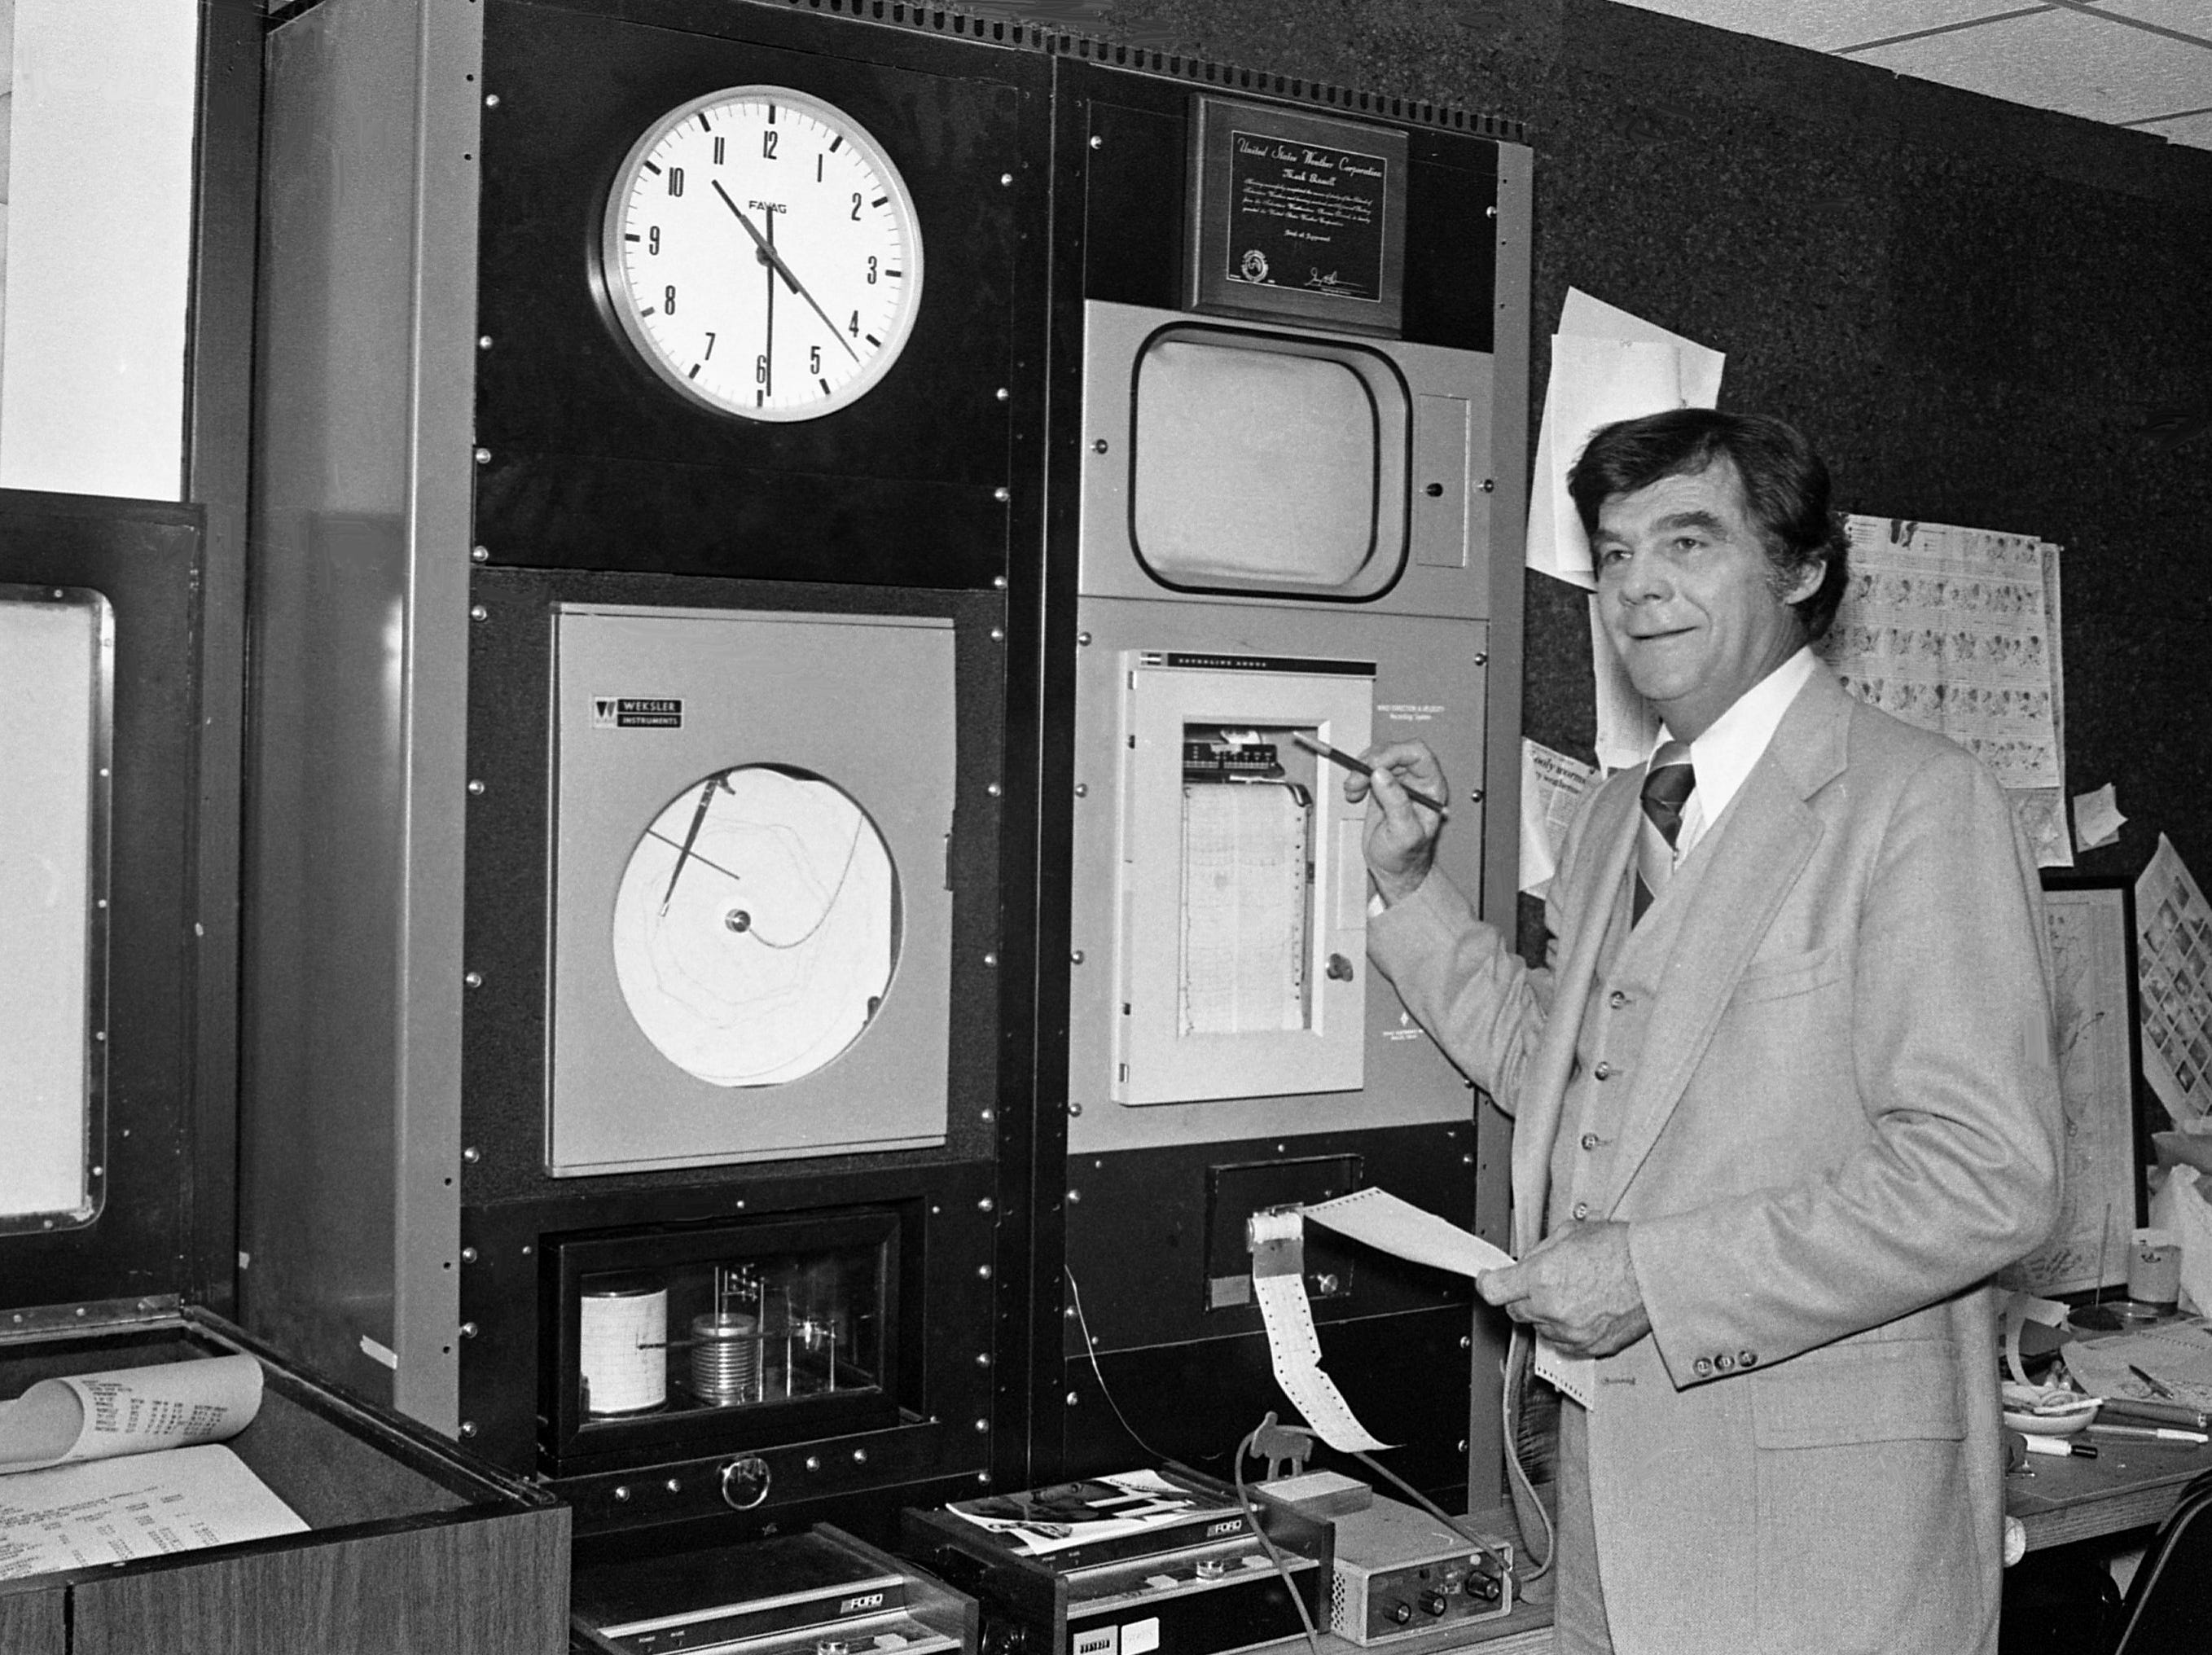 Former WSM-TV personality Boyce Hawkins is hard at work April 8, 1979, on his new job as weatherman for WTVF-Channel 5. He is replacing Mark Russell who resigned to accept a position at KATV in Little Rock, Arkansas.